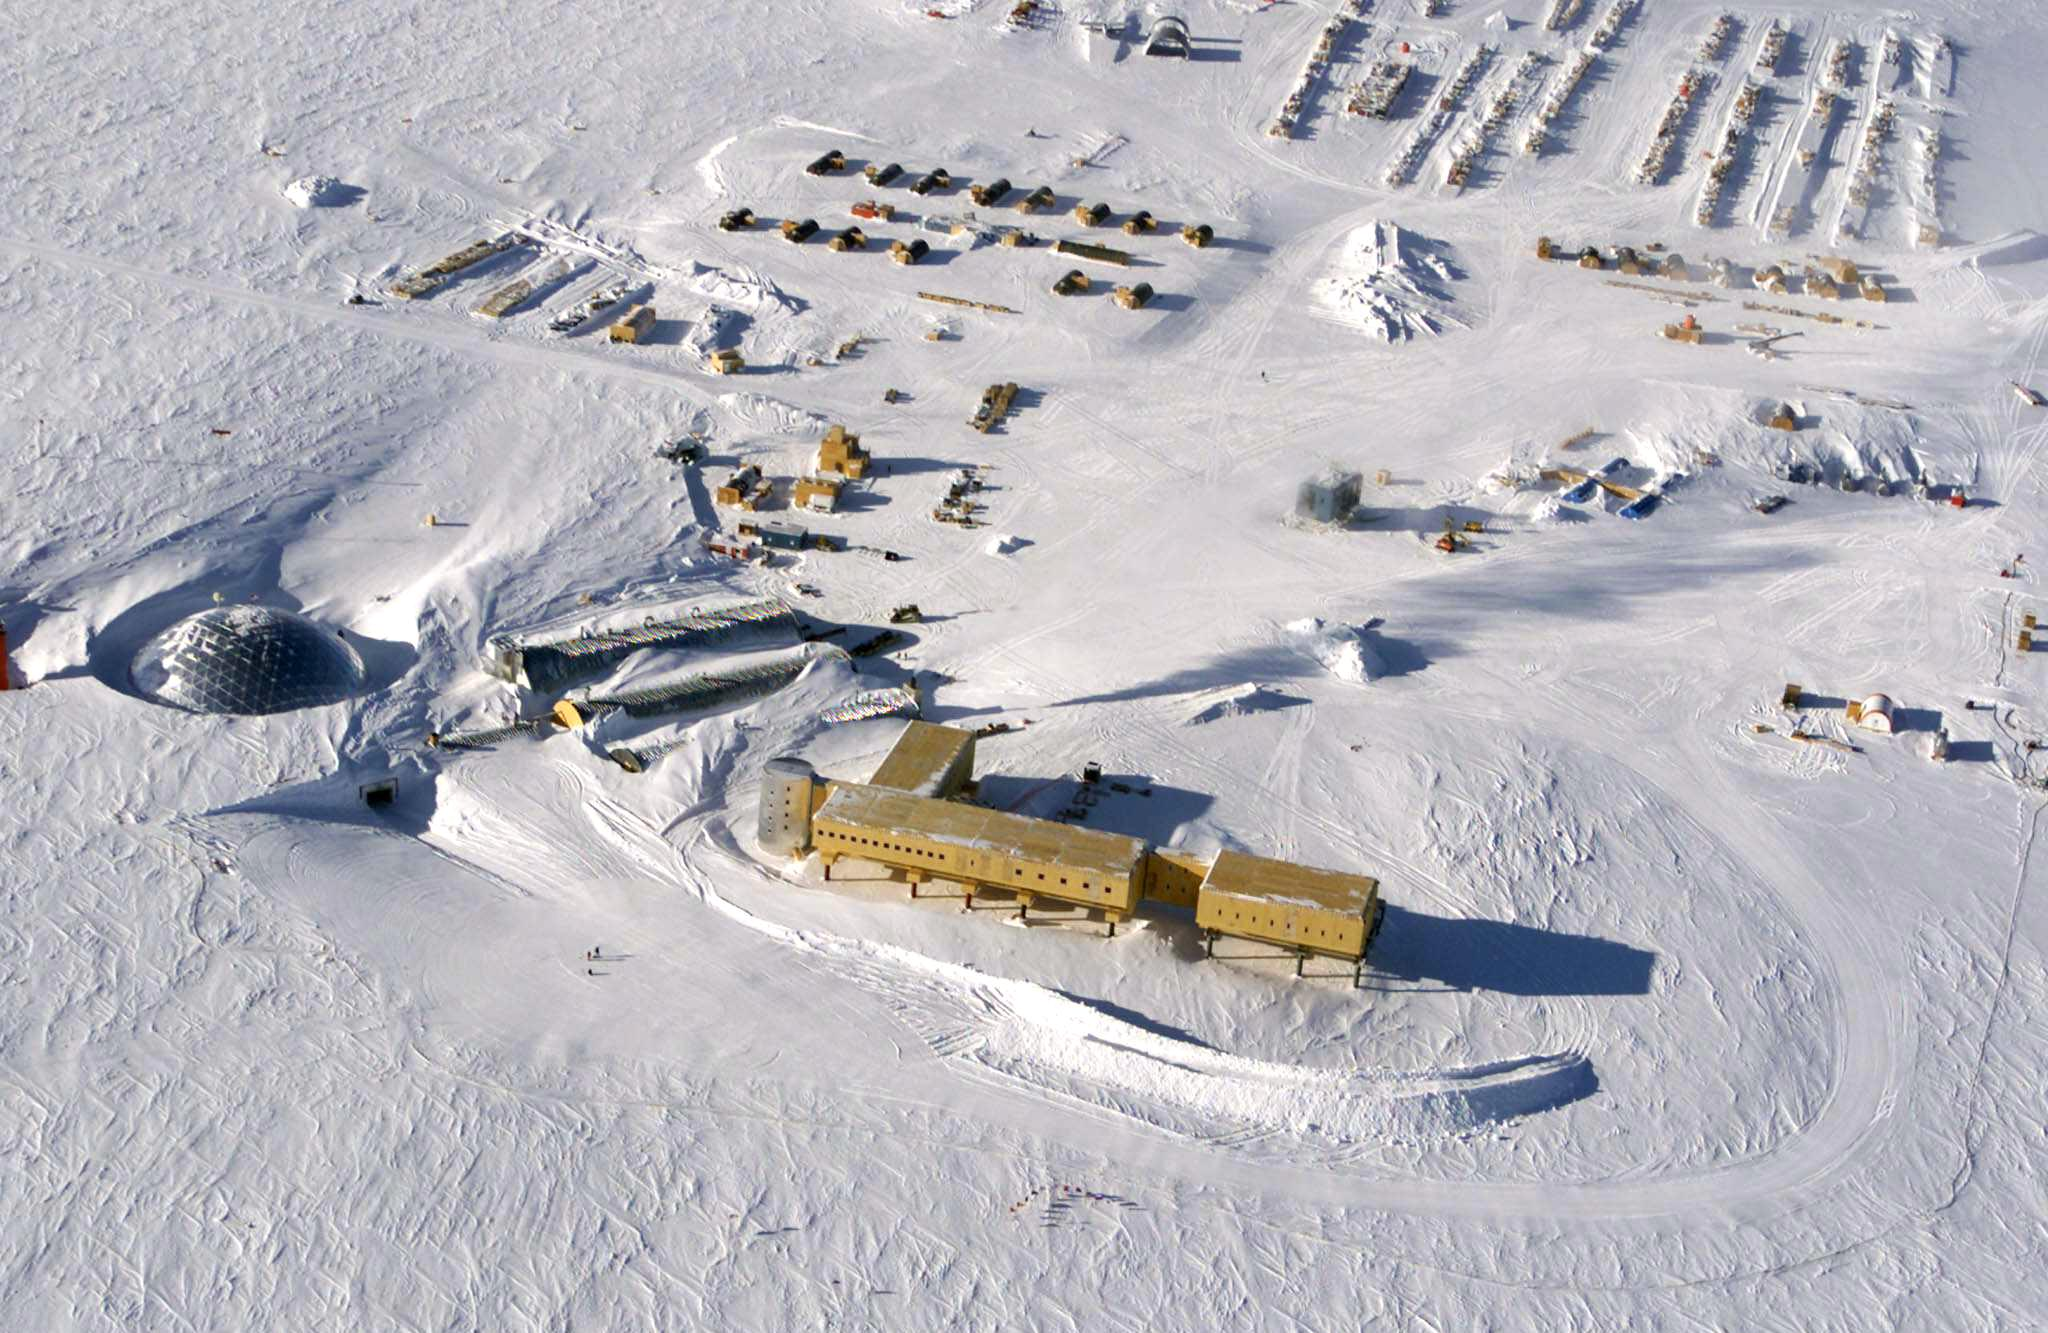 This handout photo dated 31 October 2002 shows an aerial view of the U.S. Amundsen-Scott South Pole Station in Antarctica.